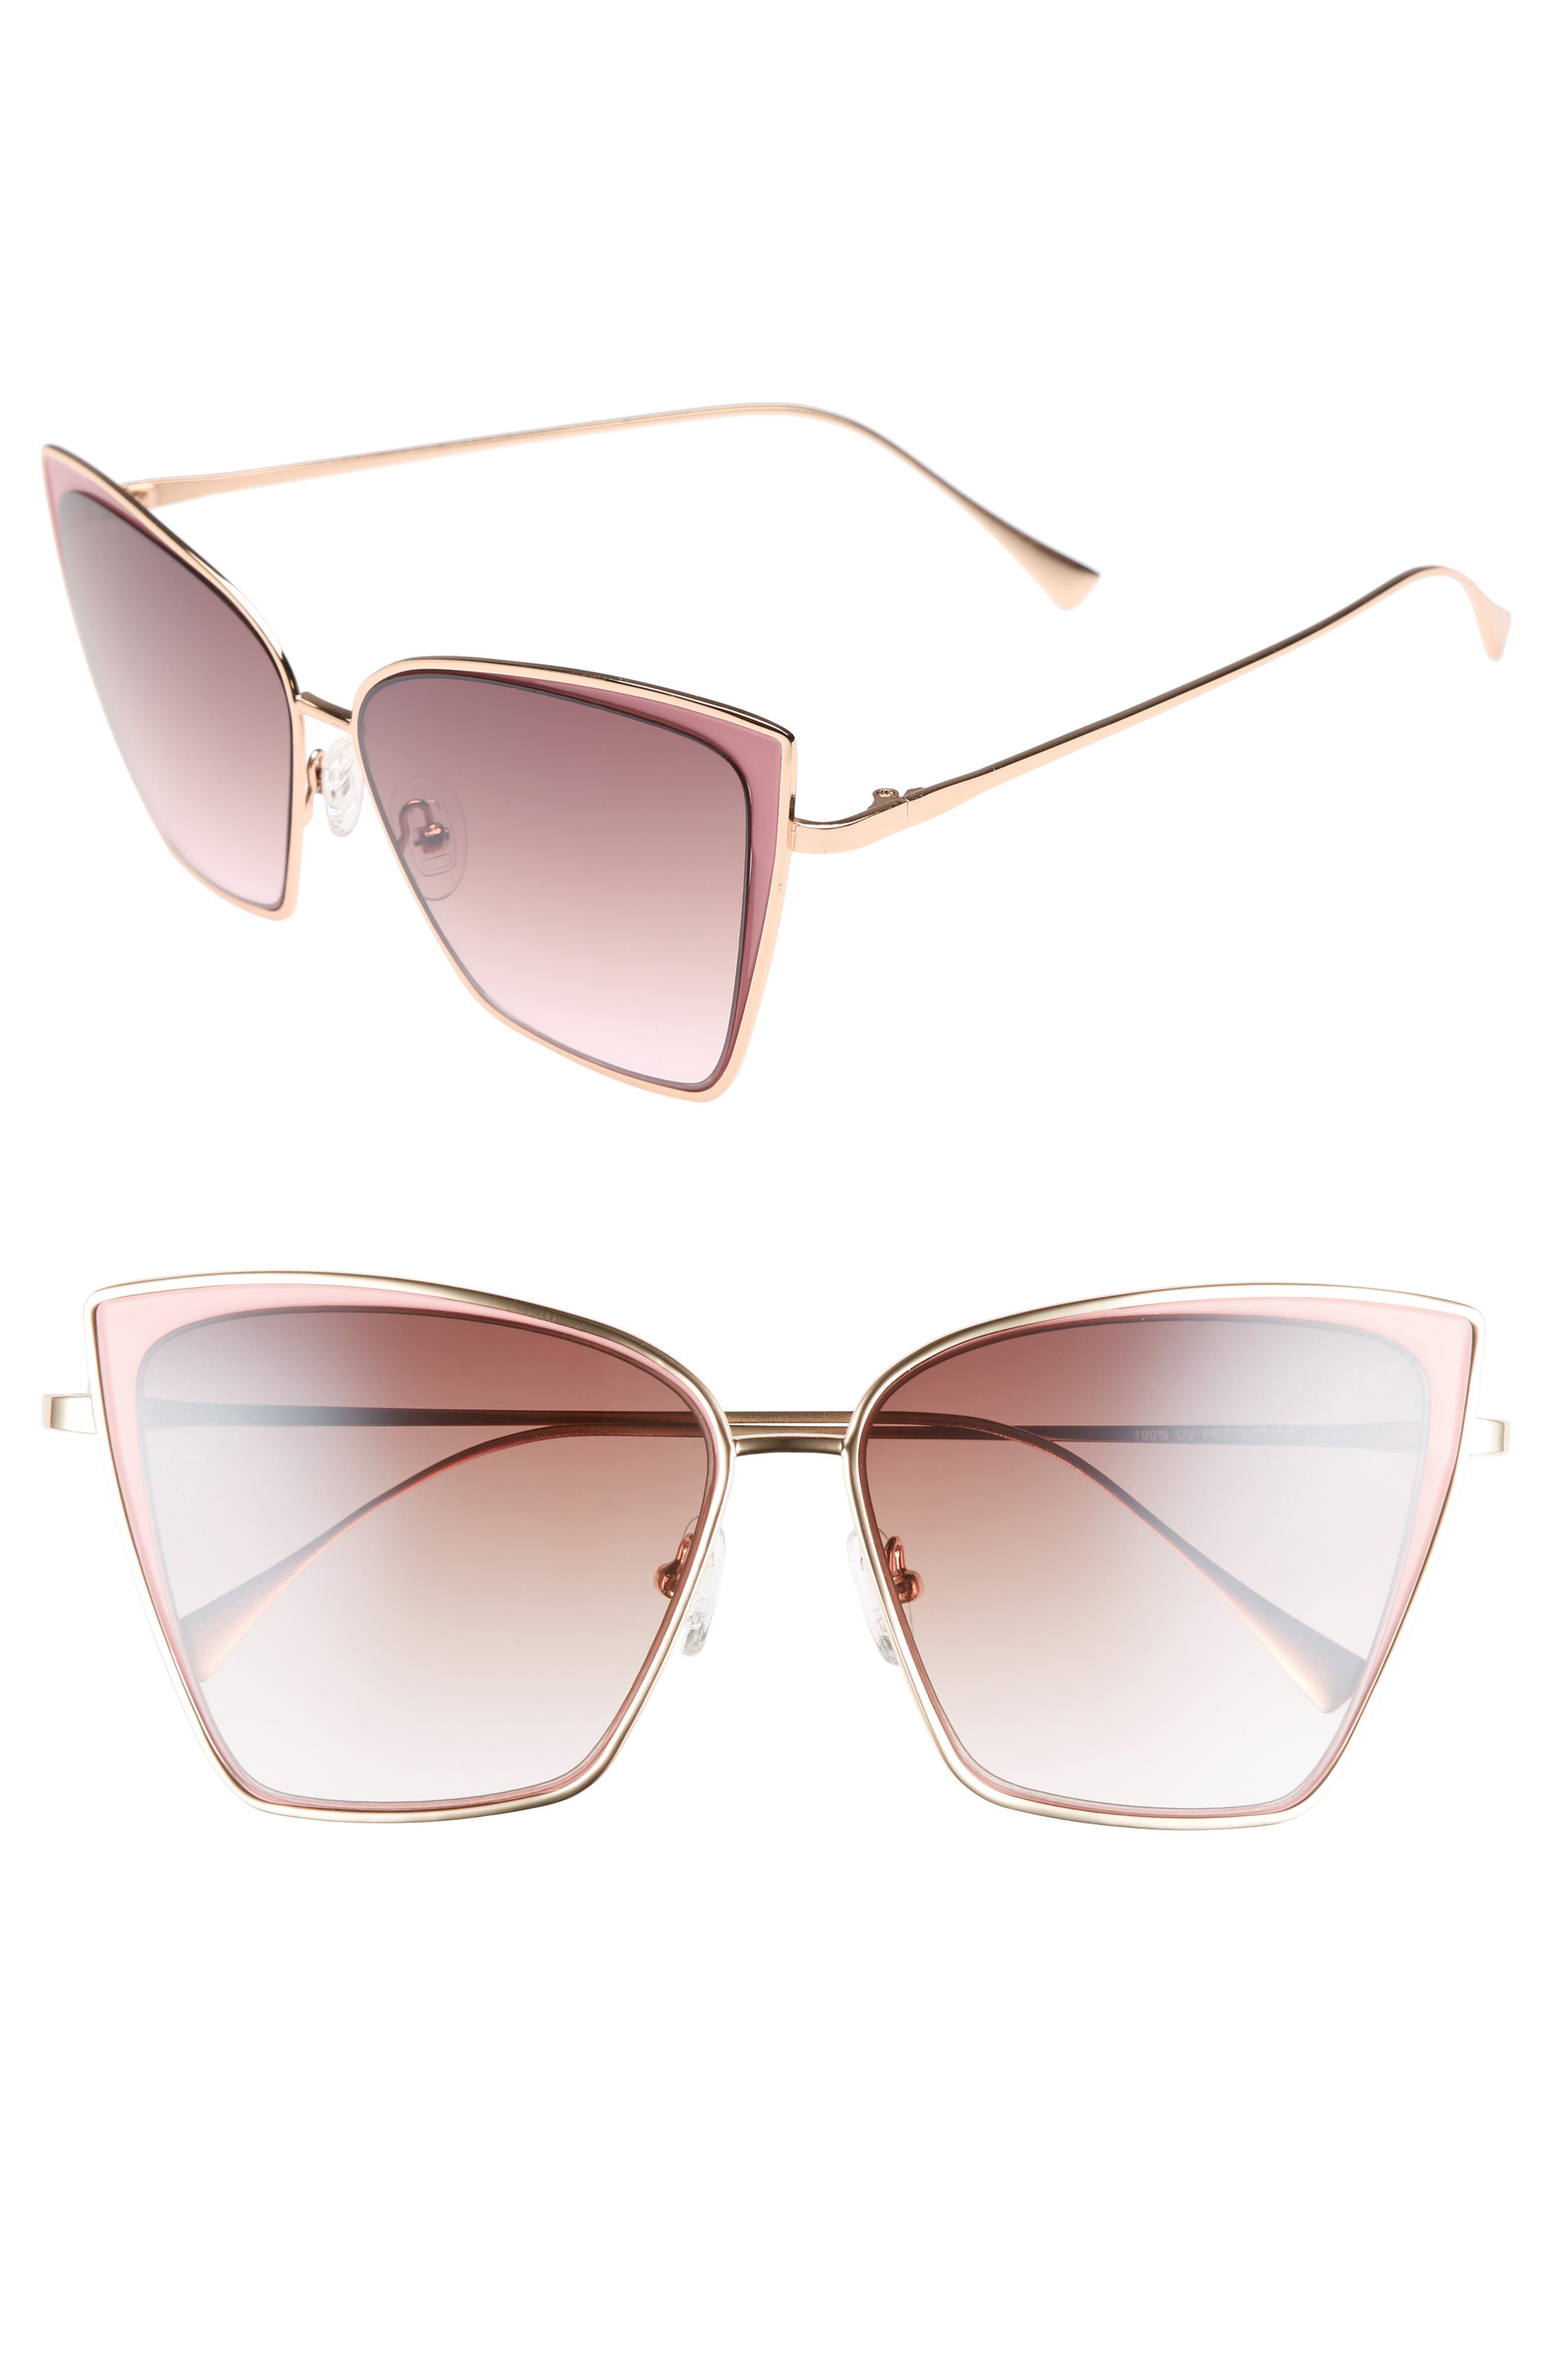 Main Image - Leith Pinkaboo 58mm Sunglasses